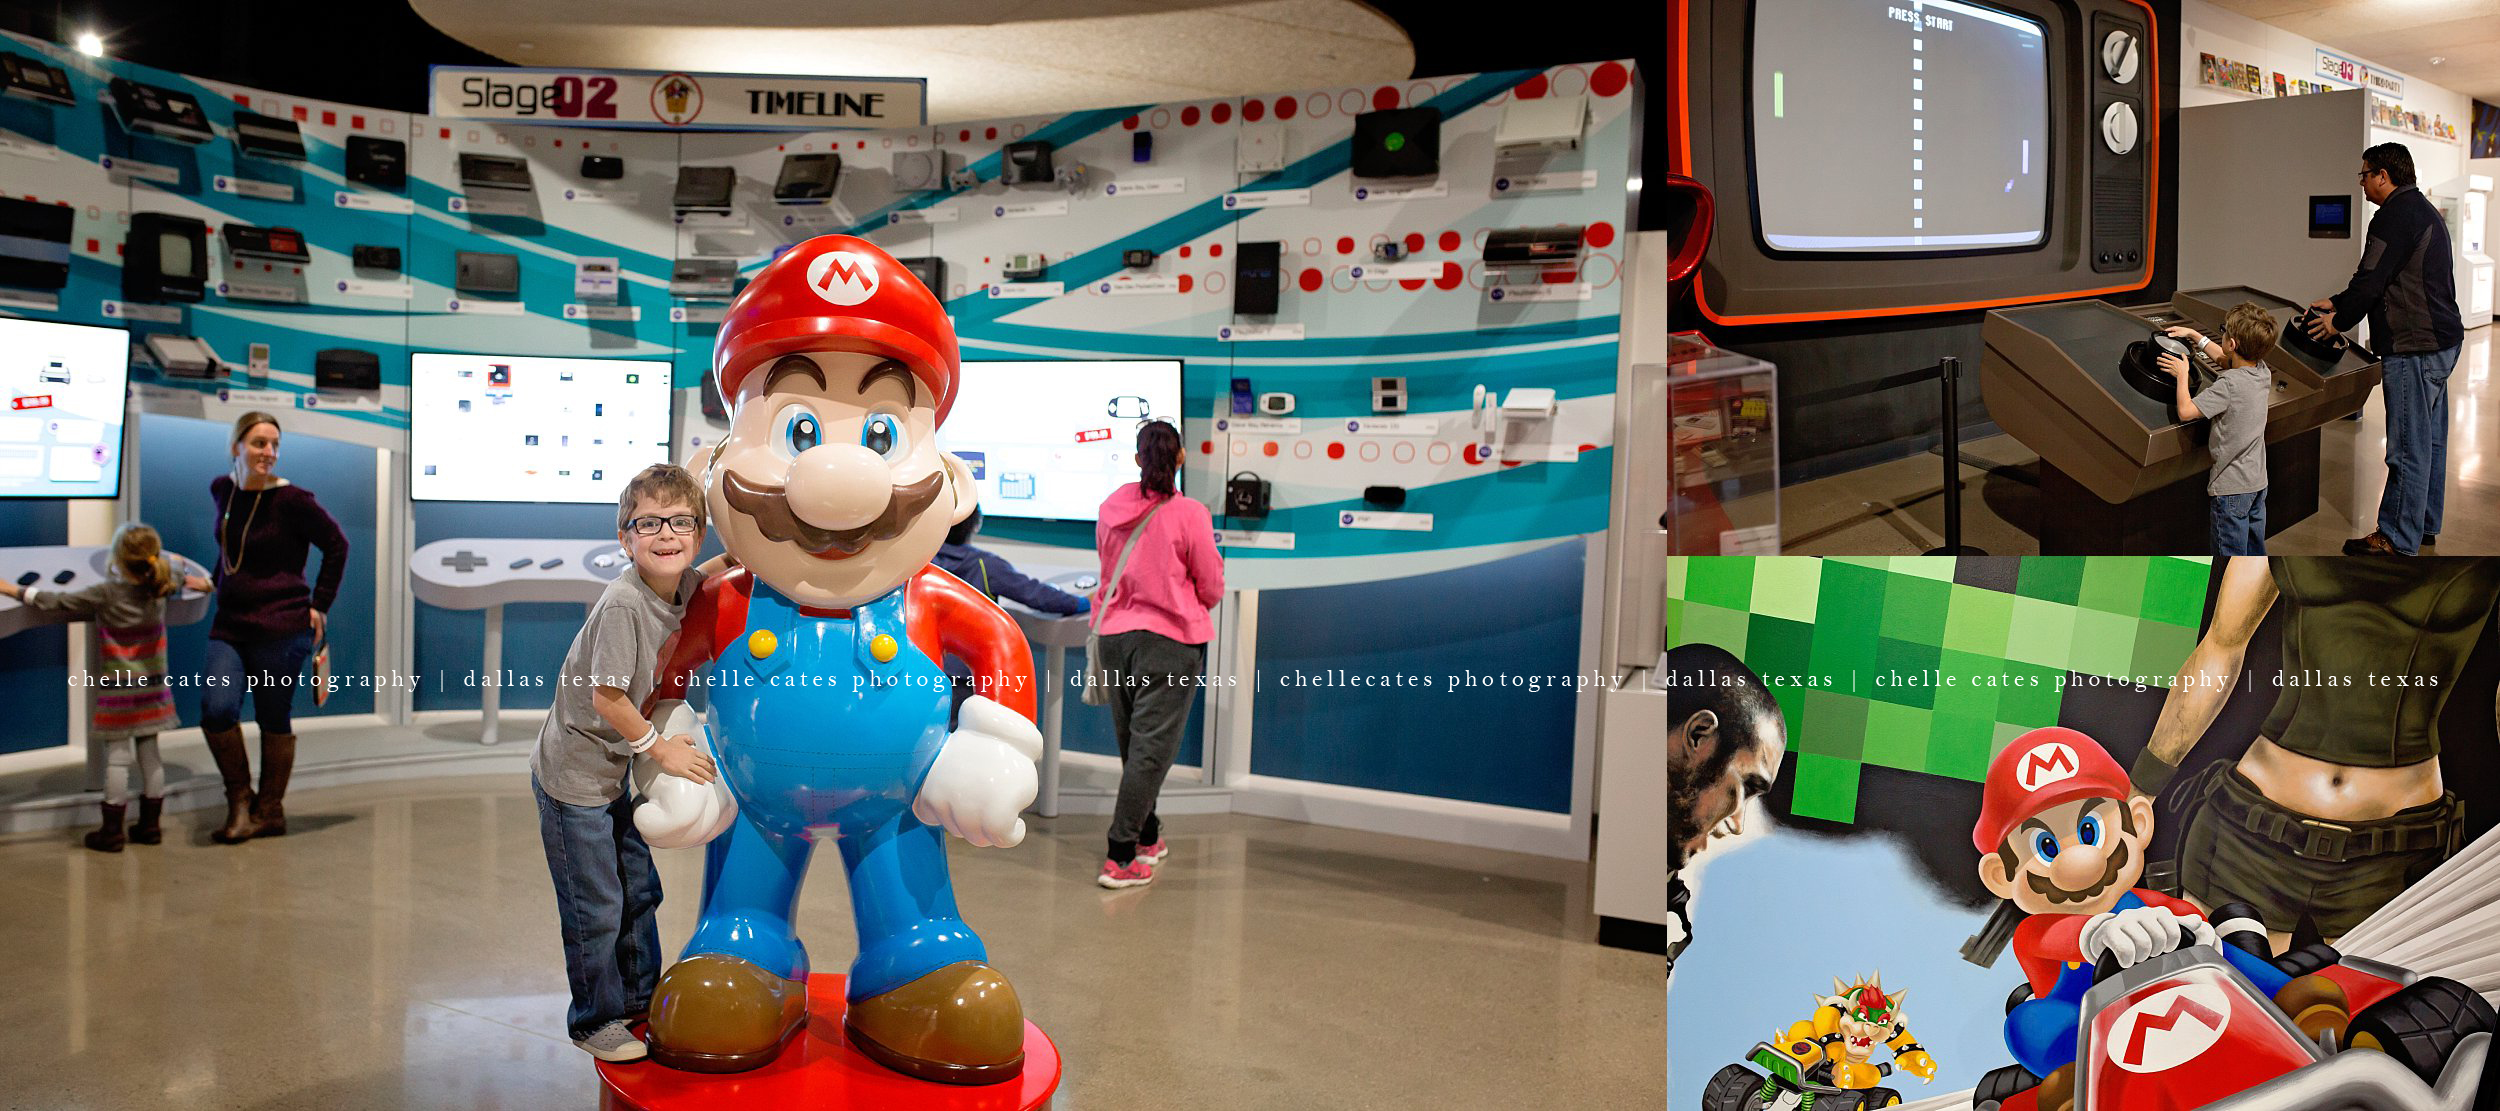 young boy posing with lifesize Mario figure at the National Videogame Museum in Frisco Texas